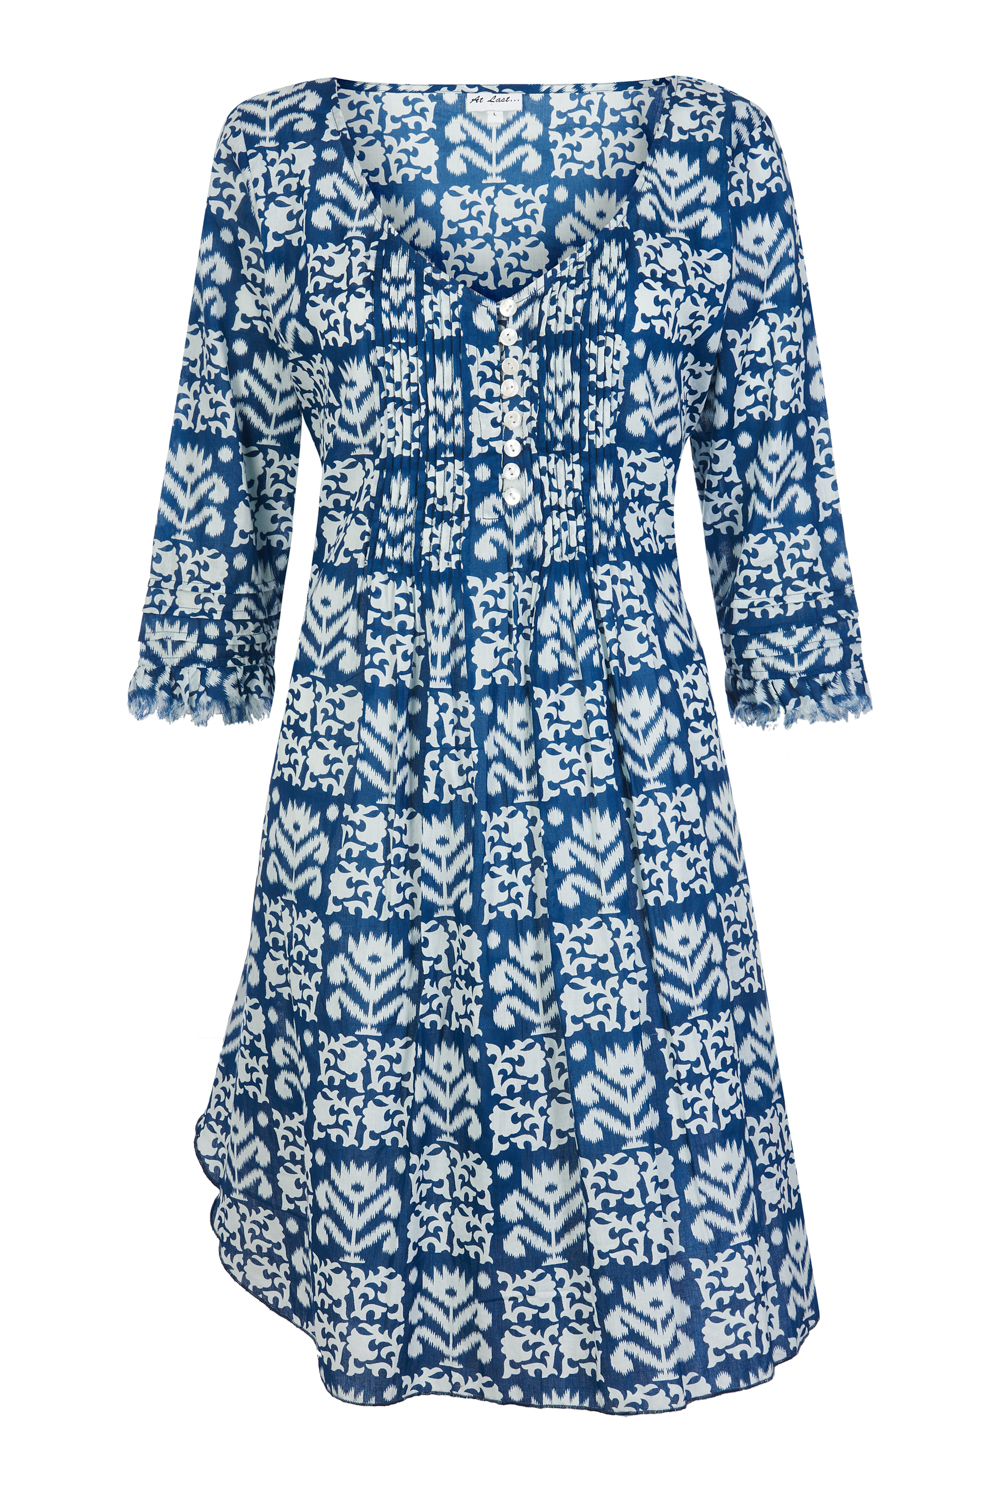 At Last Annabel No Frill - Navy and White Ikat